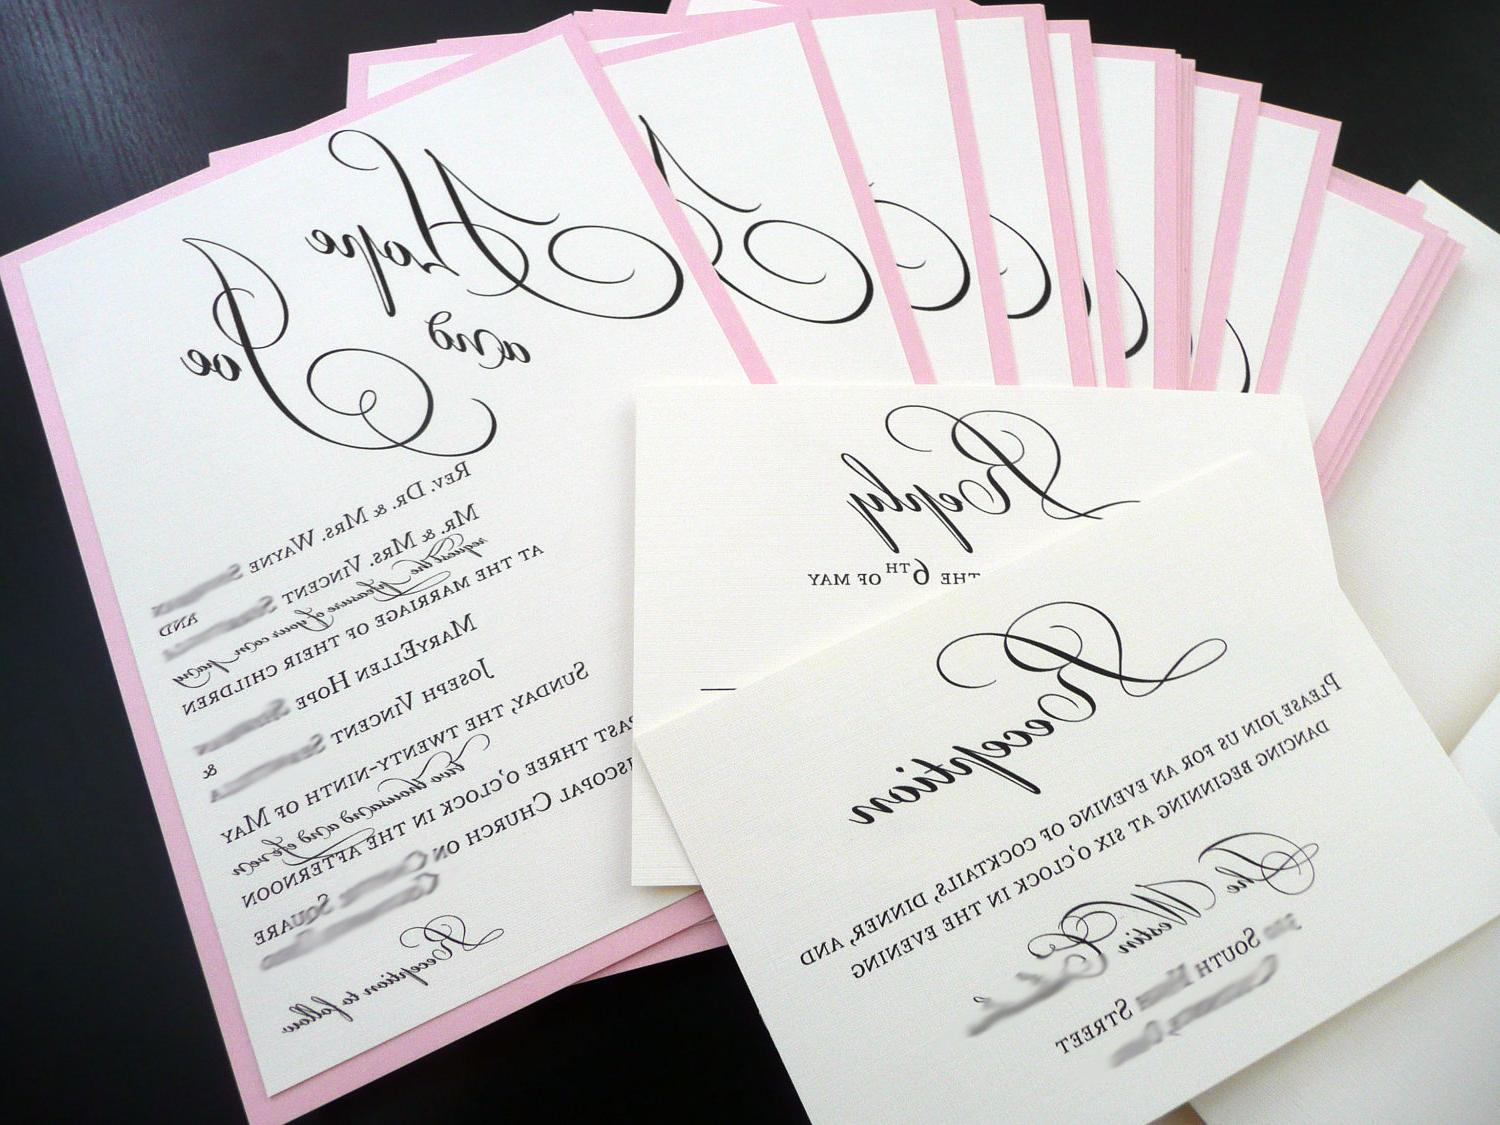 Pink Wedding Invitation - Hope Layered Sample. From PinkOrchidInvites